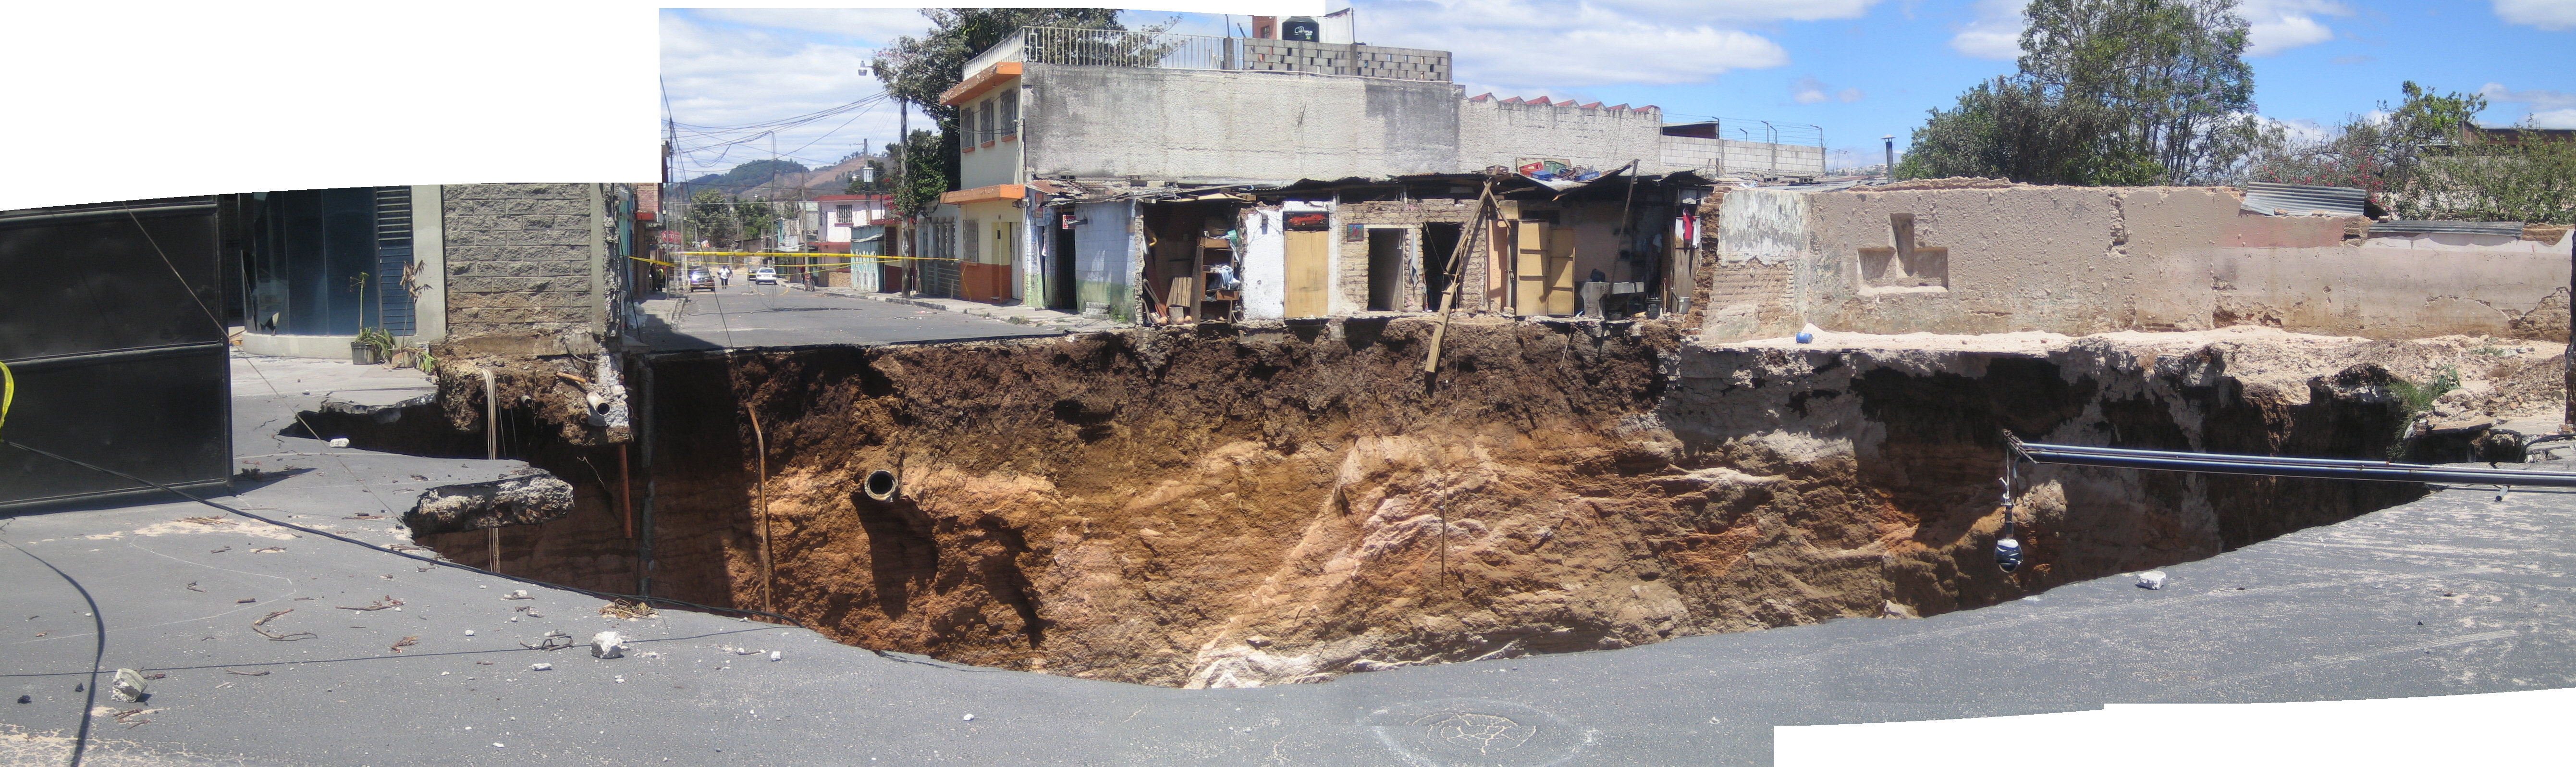 2010 Guatemala City sinkhole  Wikipedia